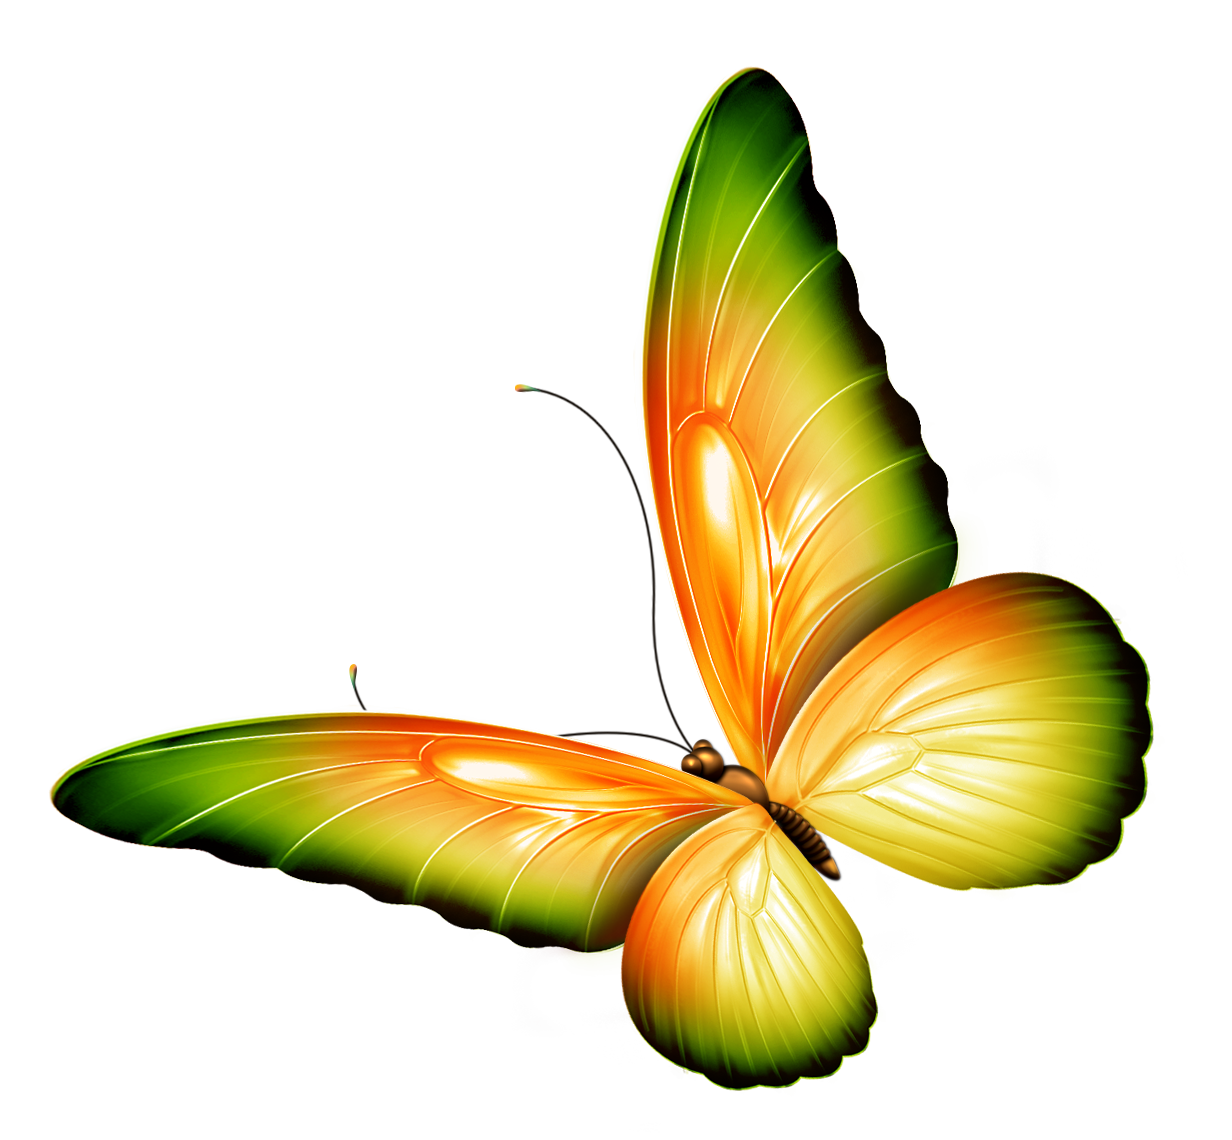 Flowers For Yellow Flower Border Clip Art - PNG HD Of Butterflies And Flowers